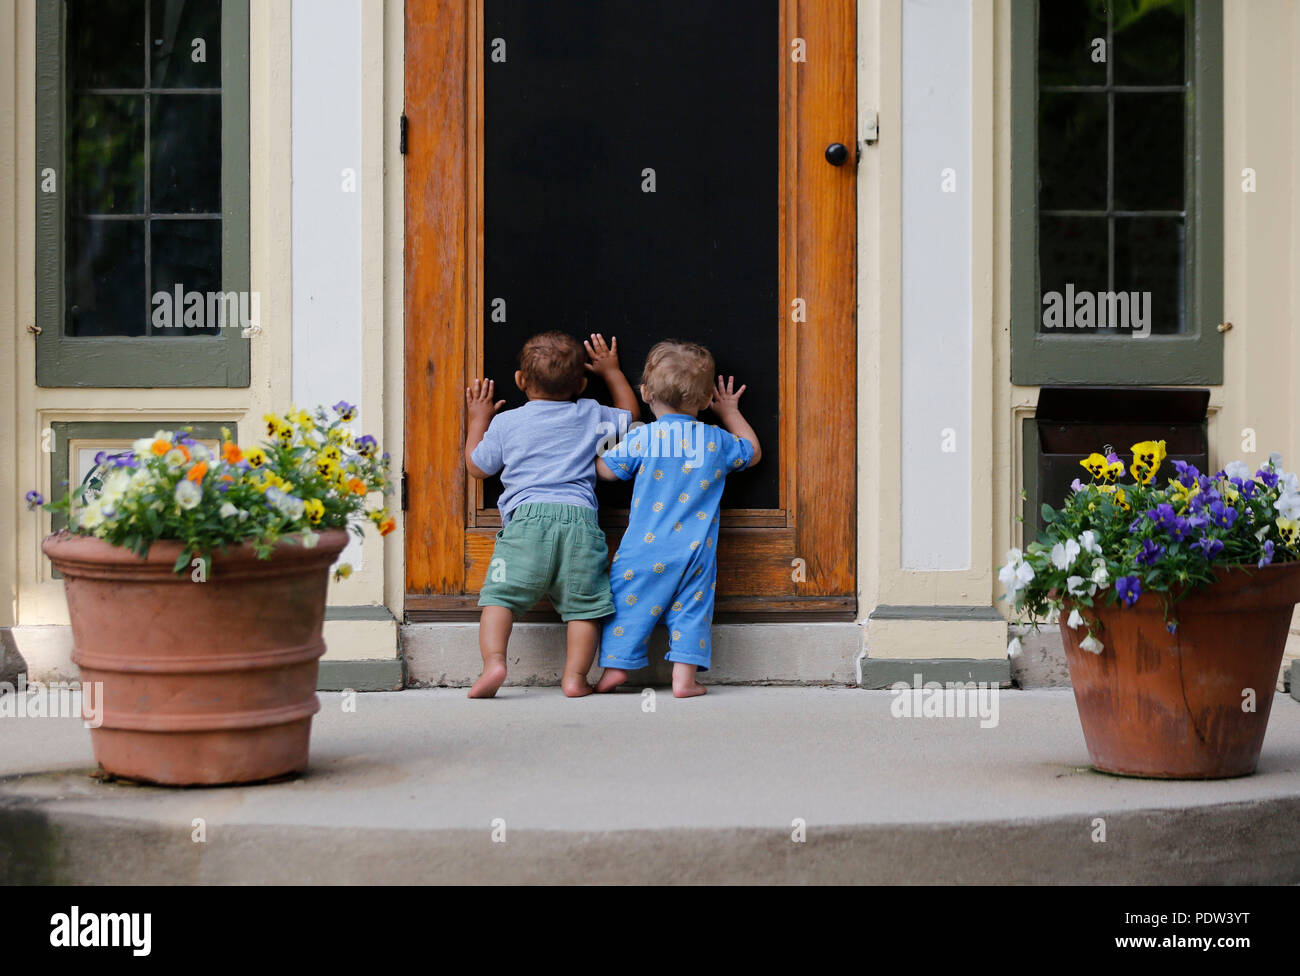 Two Toddler Boys Investigate The Inside Of An Home By Looking Through The Screen  Door.